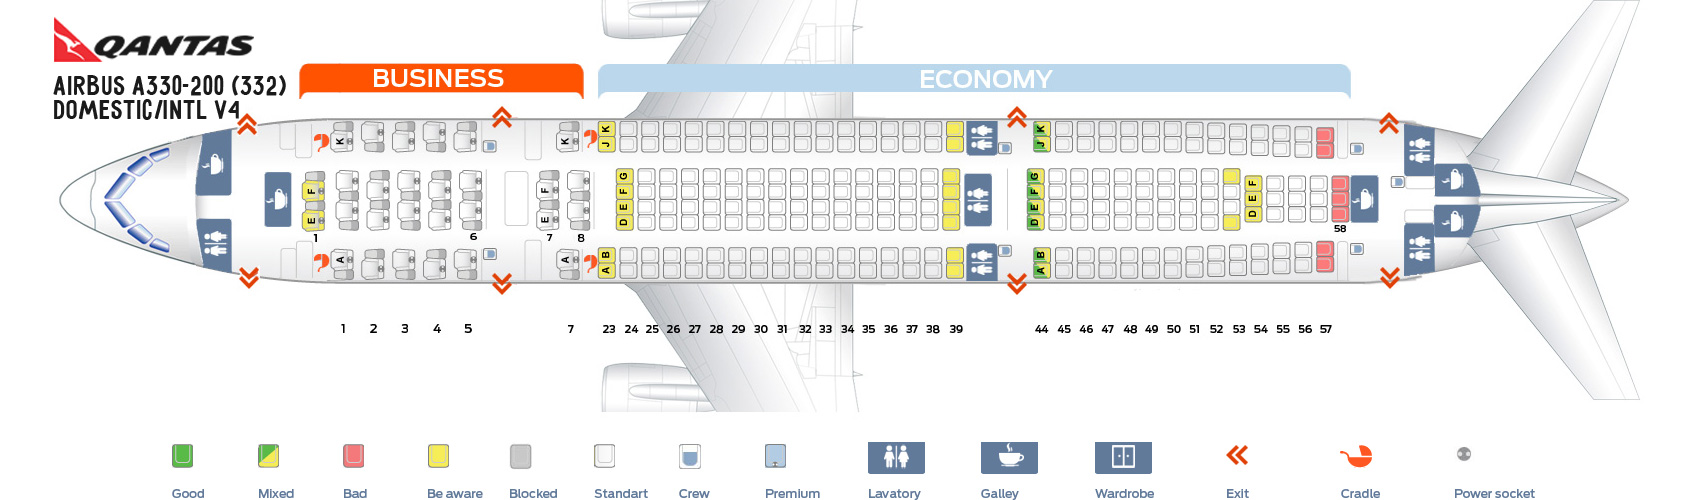 Seat Map Airbus A330-200 Domestic-Intl V4 Qantas Airways